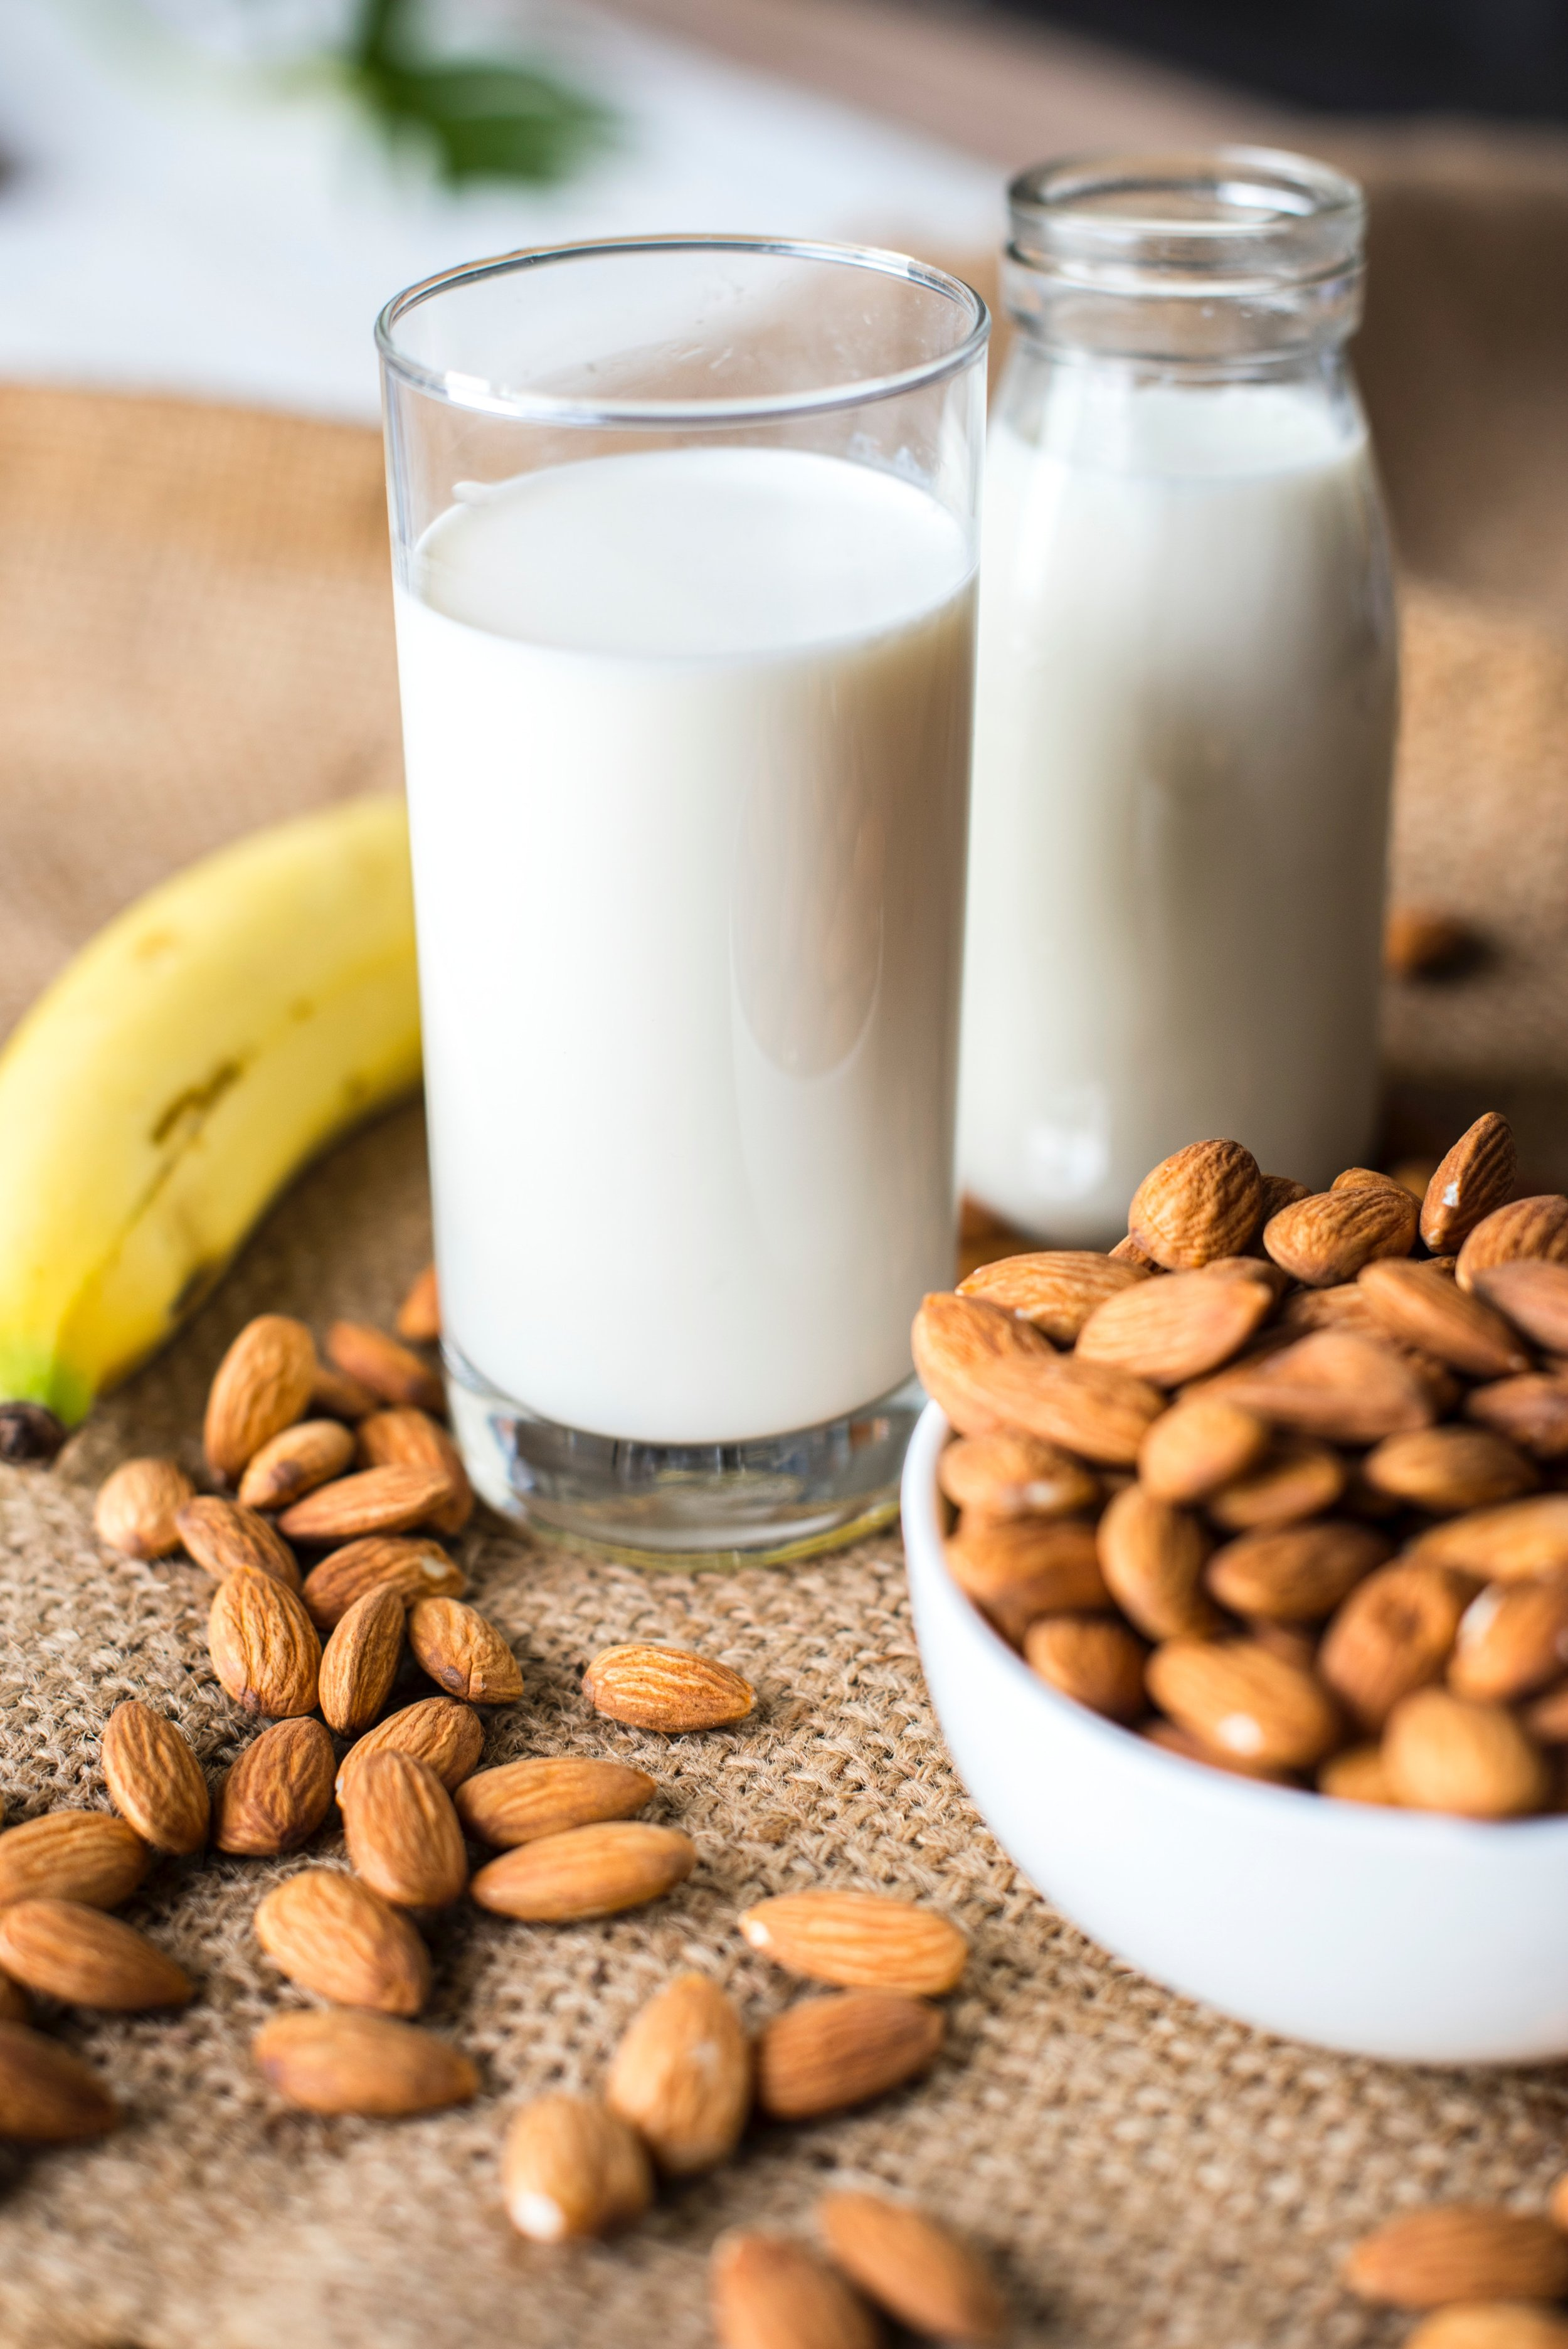 Milk Alternatives   Interested in adding additional milk options? Whether Almond, Soy, Skim, or Coconut Milk, we are able to make delicious drinks with all milk preferences.